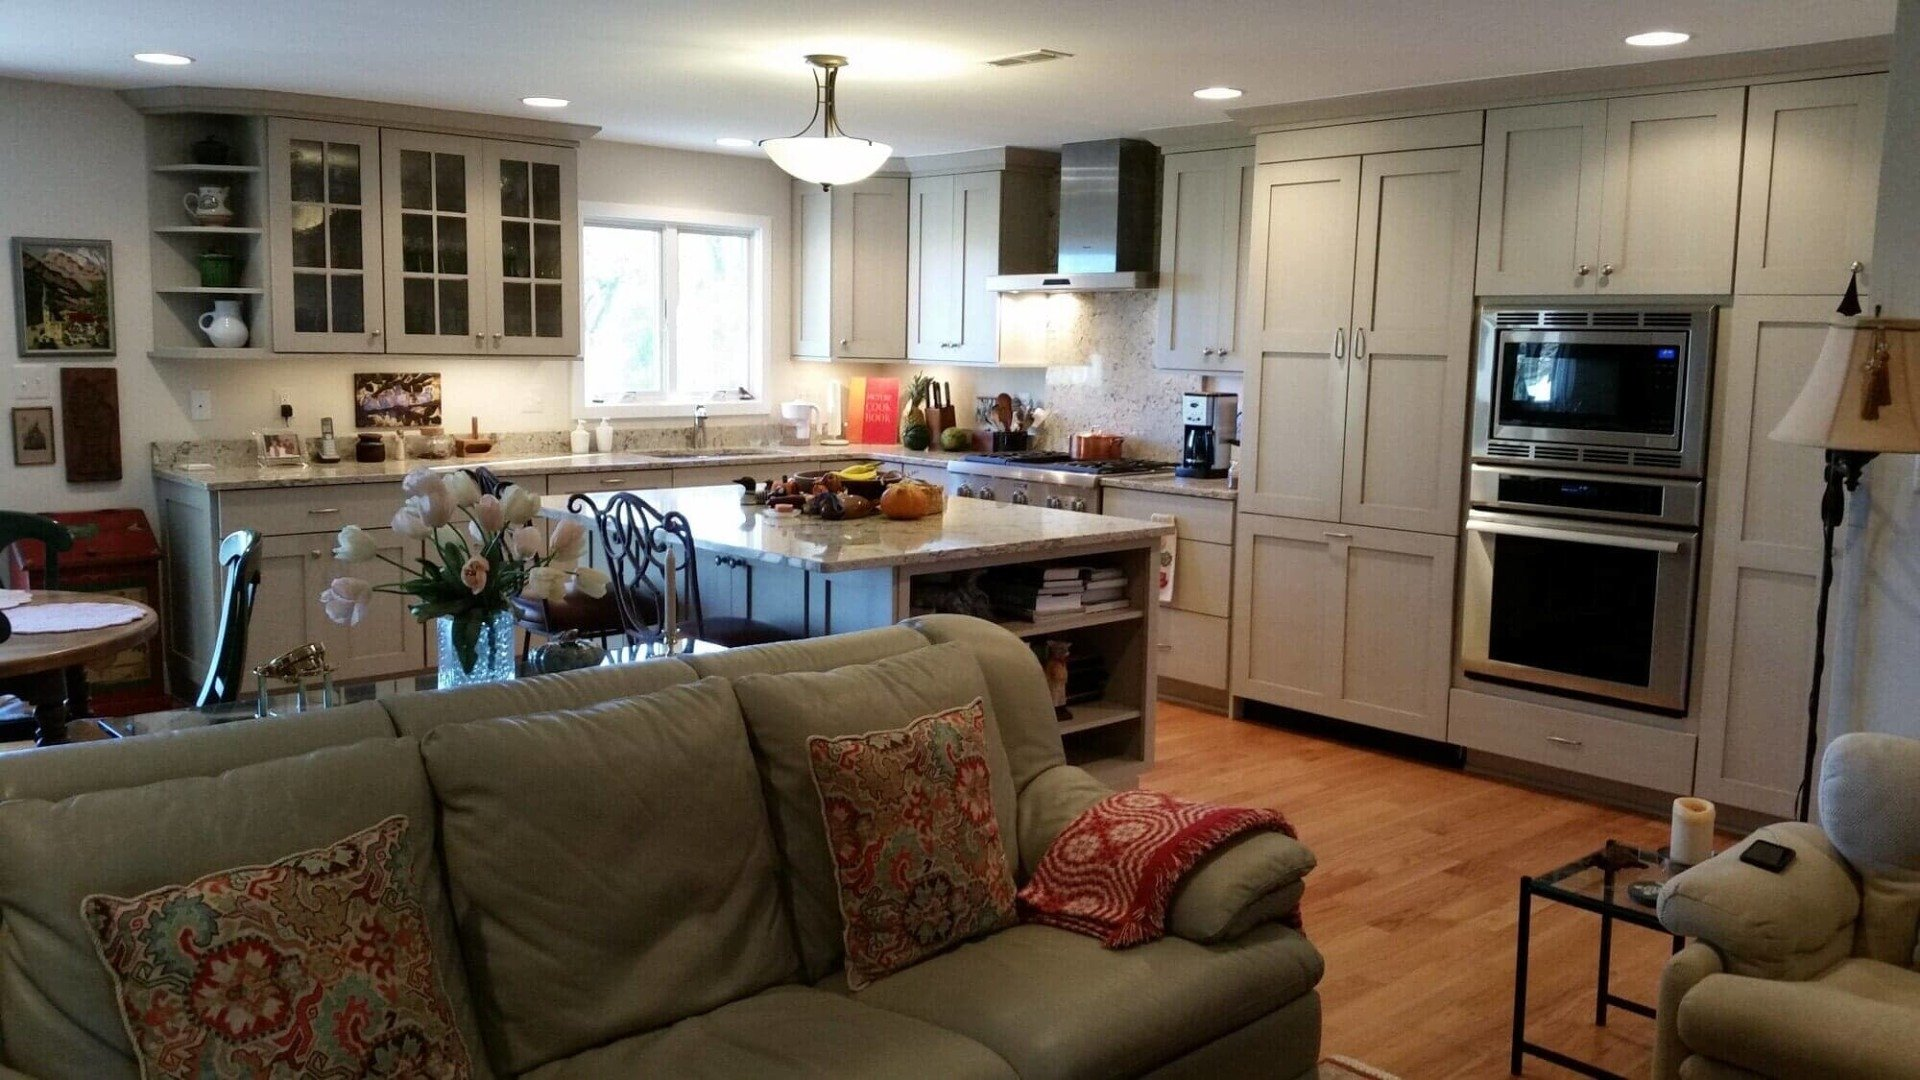 Kitchen and Bathroom Remodeling - Annapolis, MD ...